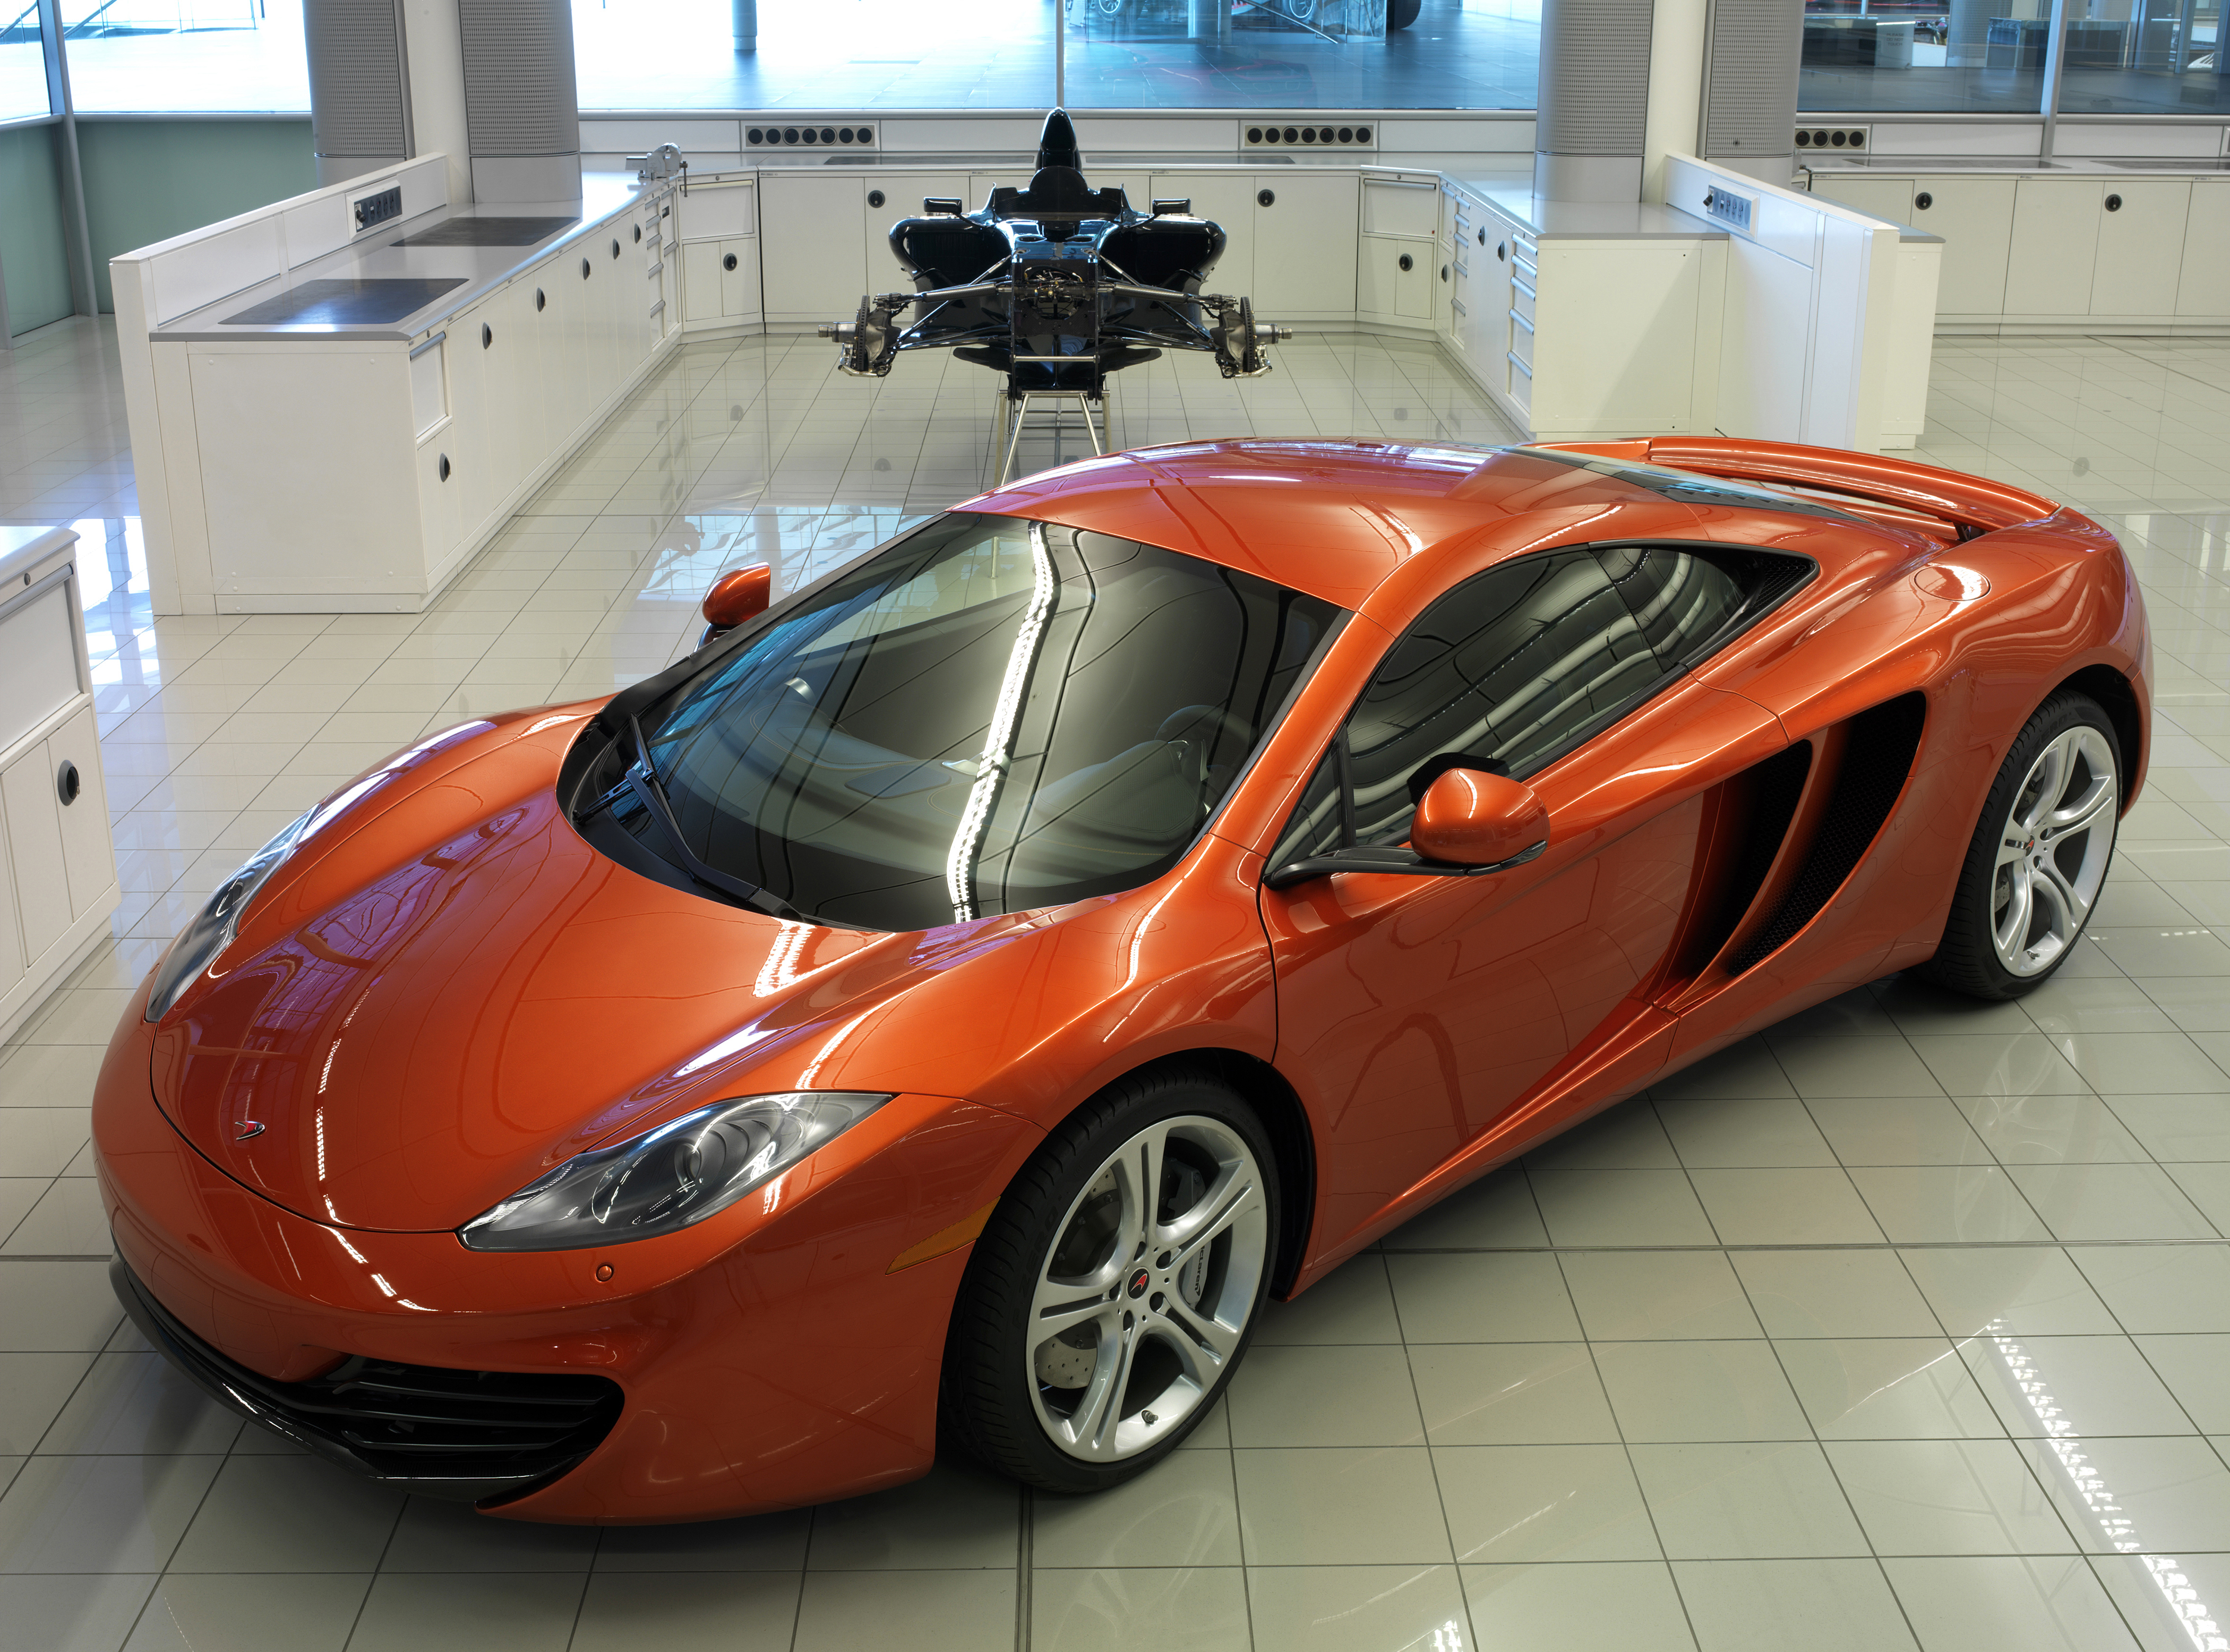 McLaren's new MP4-12C sports car « CLIVE COULDWELL: Formula One as ...